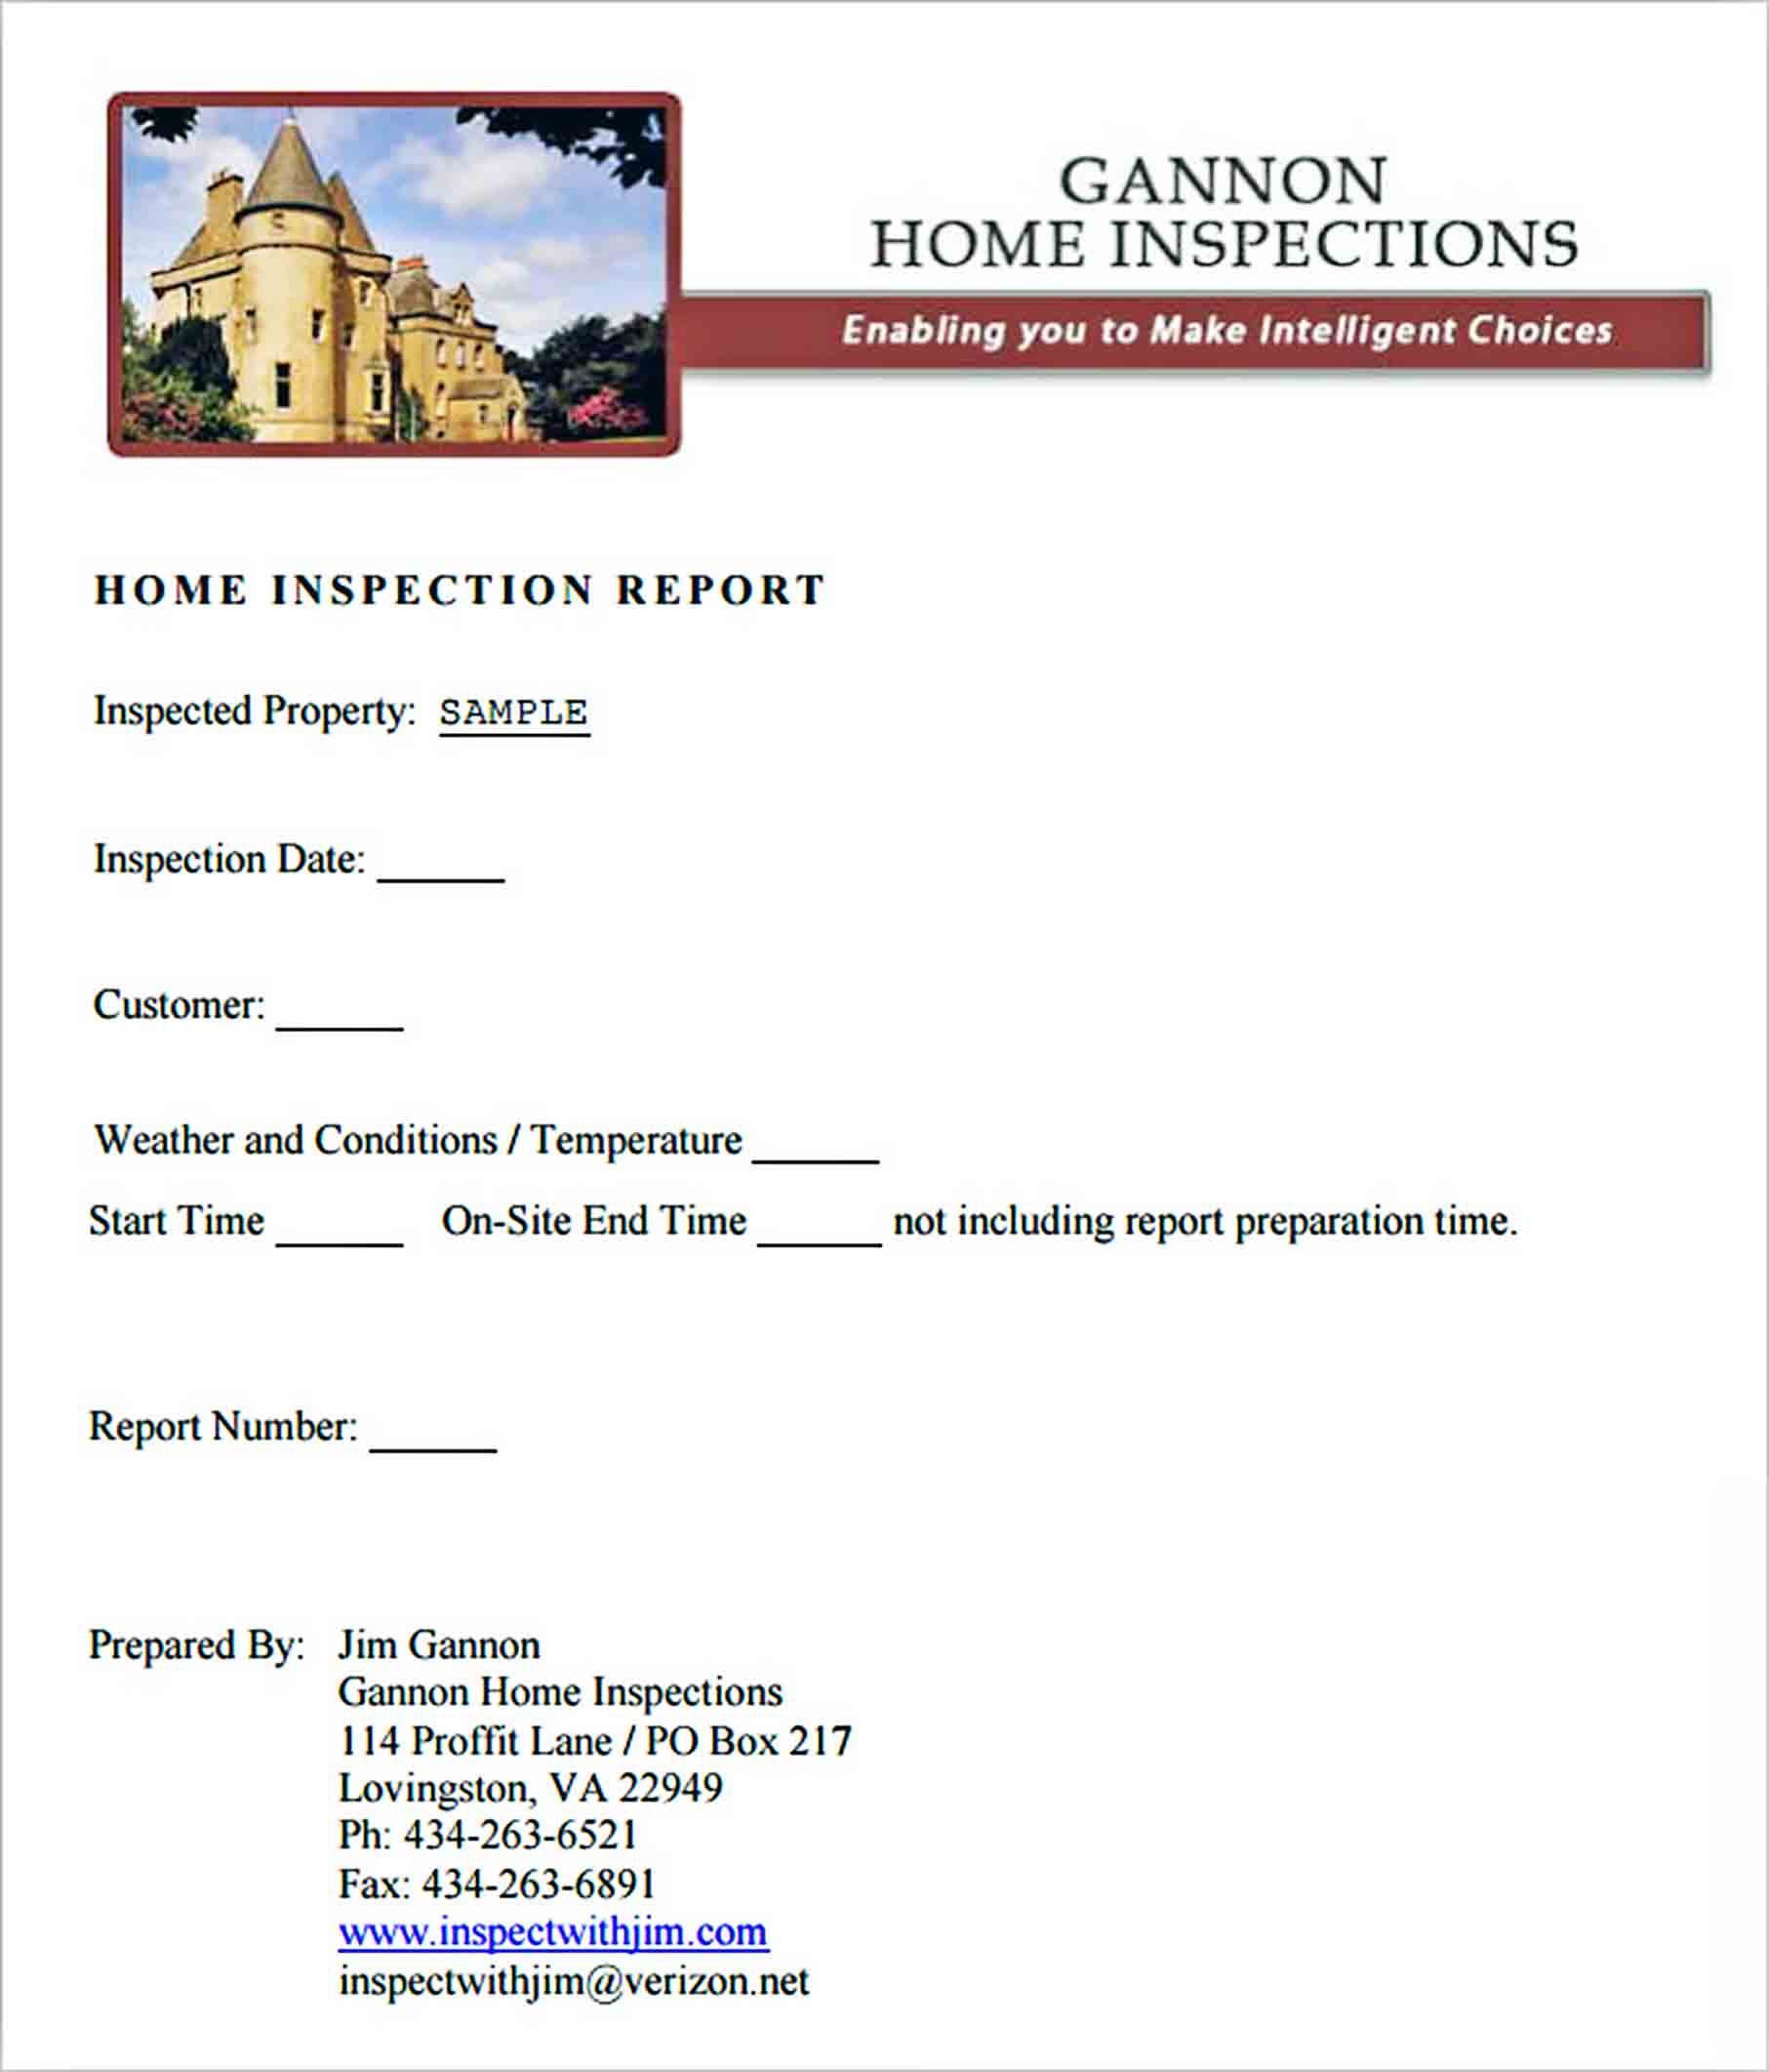 Templates Home Inspection Report 001